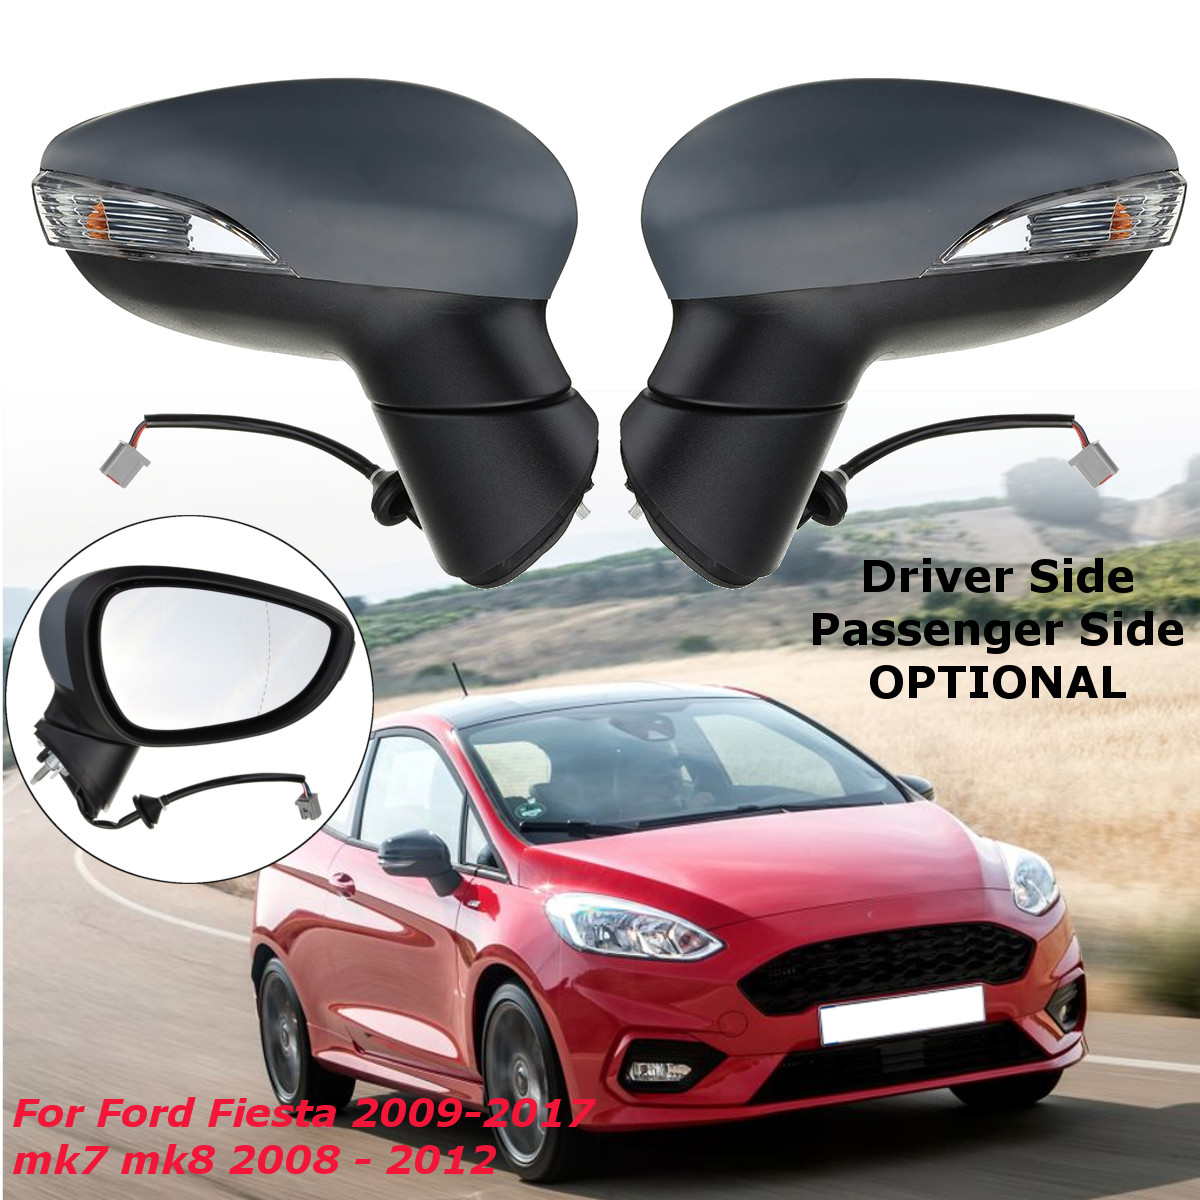 Right /Left Car Door Electric Wing Mirror Heated Driver Or Passenger Side for Ford Fiesta 2009-2017 mk7 mk8 2008 - 2012Right /Left Car Door Electric Wing Mirror Heated Driver Or Passenger Side for Ford Fiesta 2009-2017 mk7 mk8 2008 - 2012